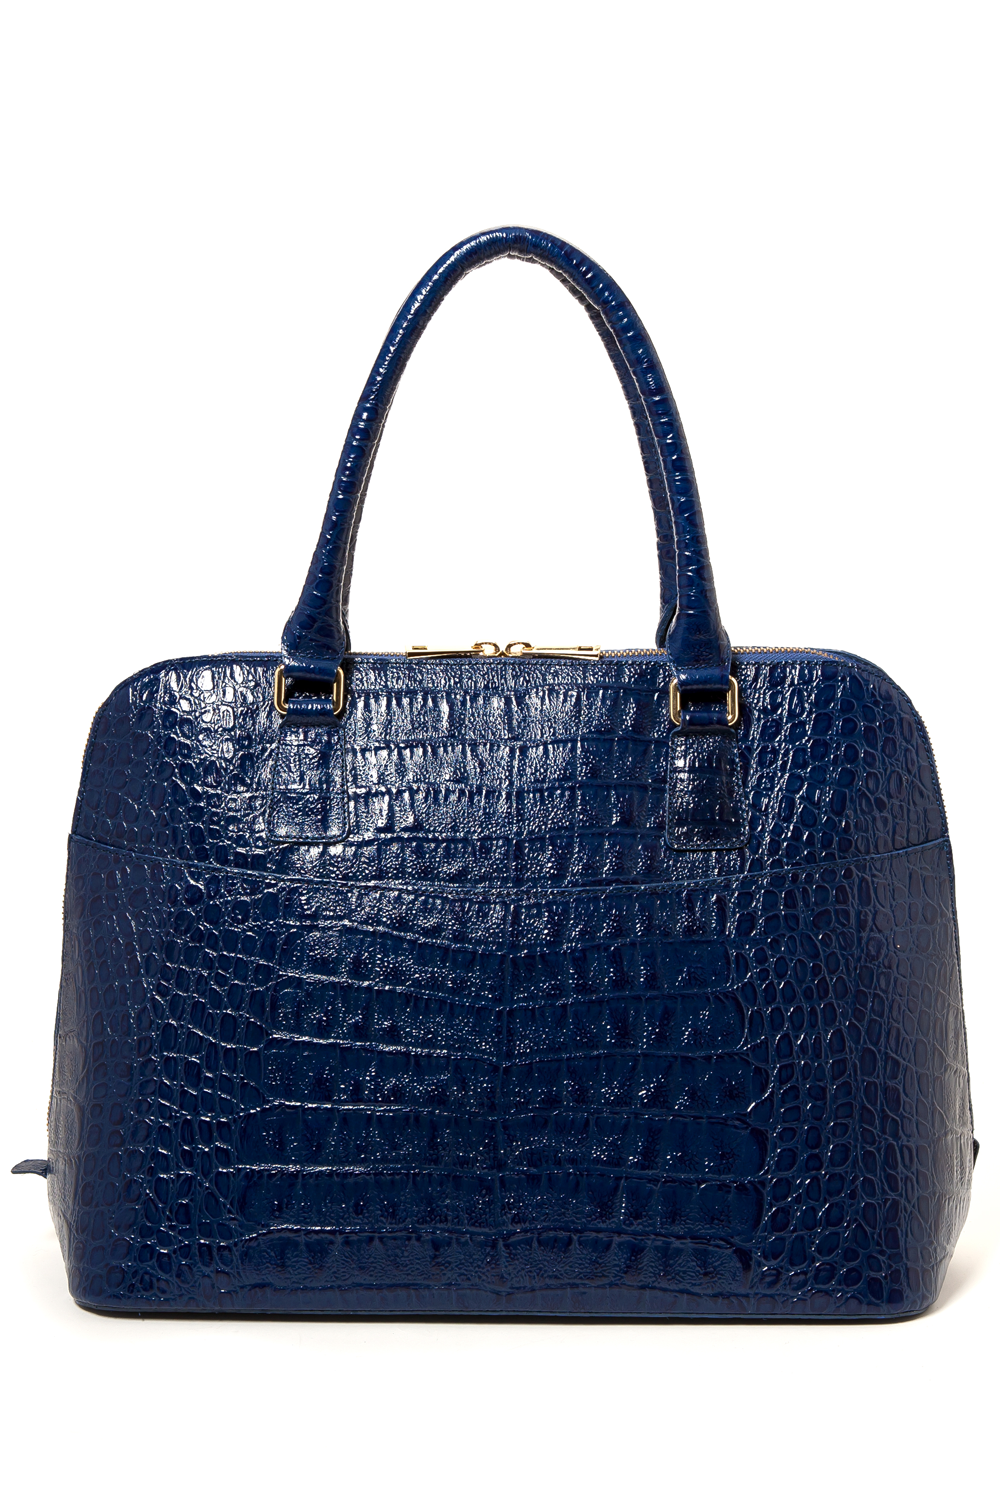 Luxe Blue, Caiman-Effect Leather 'Watson' Tote | Mel Boteri | Back View